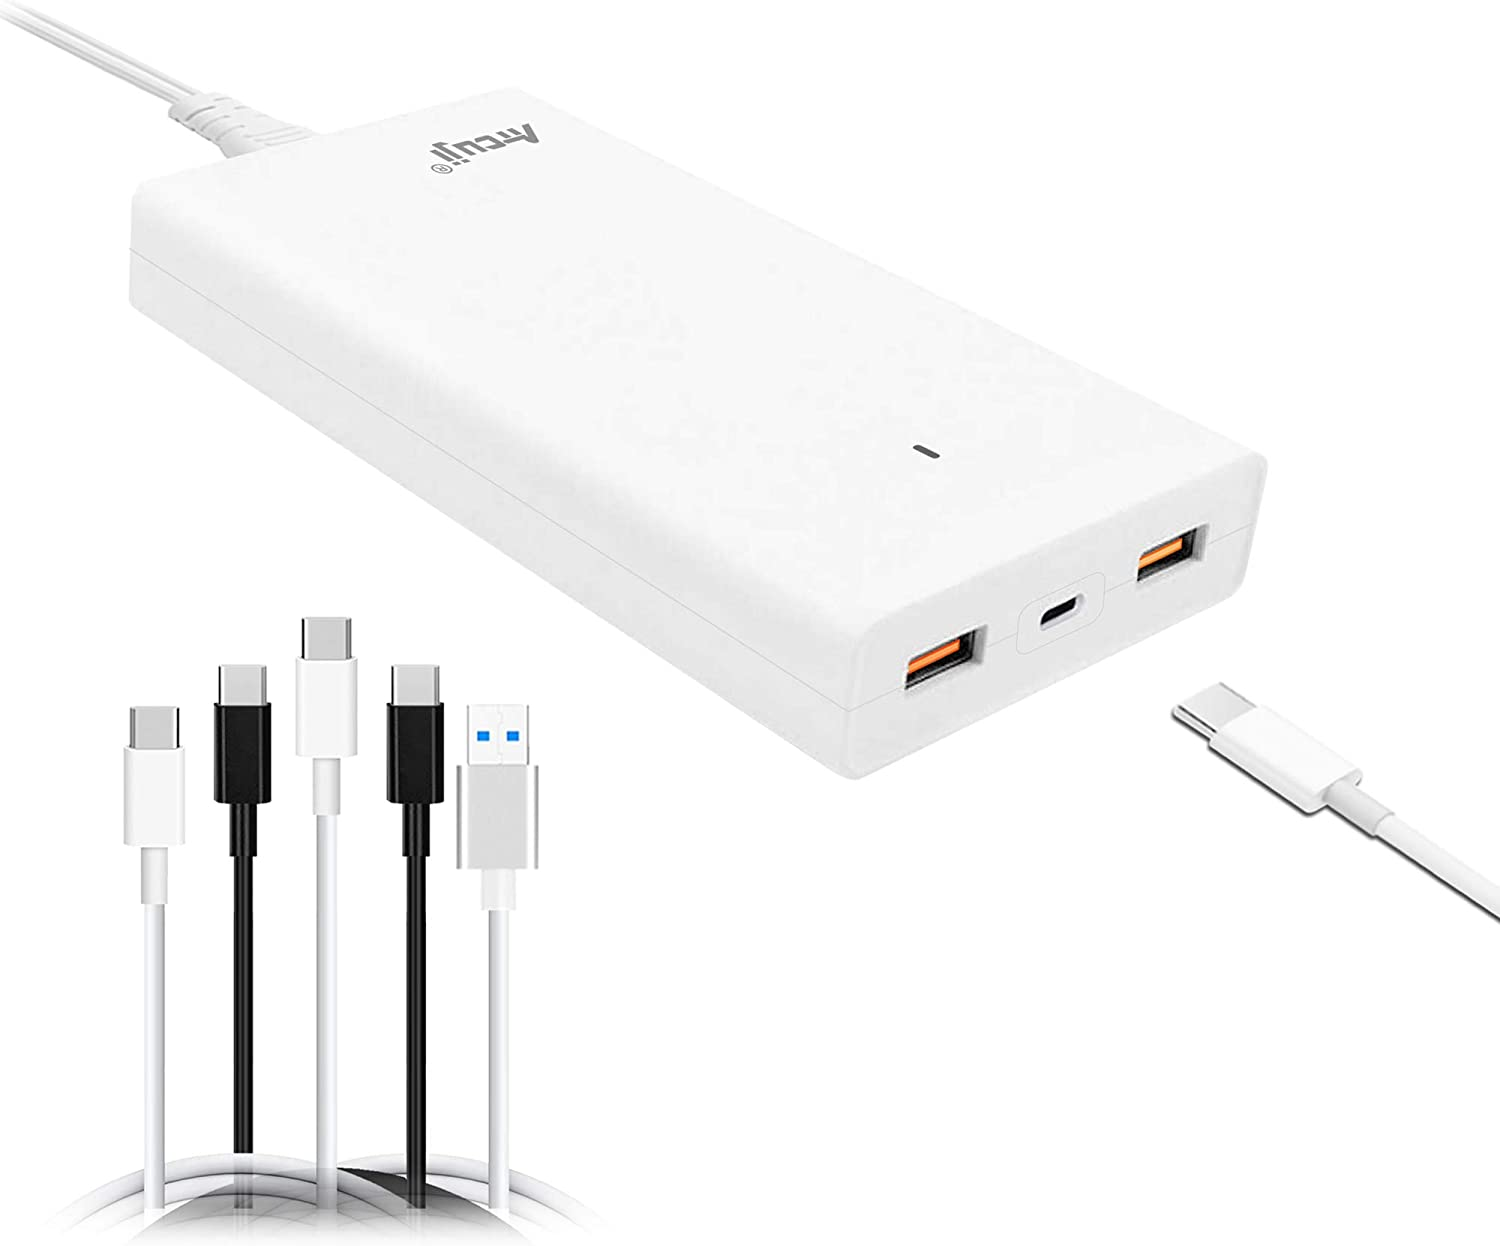 Atcuji 13PA USB C Power Adapter with 130W 90W Power Delivery for Apple MacBook Pro 87W USB C Charger Surface Book 2 Pro X 7 USB-C Power Supply Laptop HP Dell Quick Charge 3.0 iPhone Samsung and More